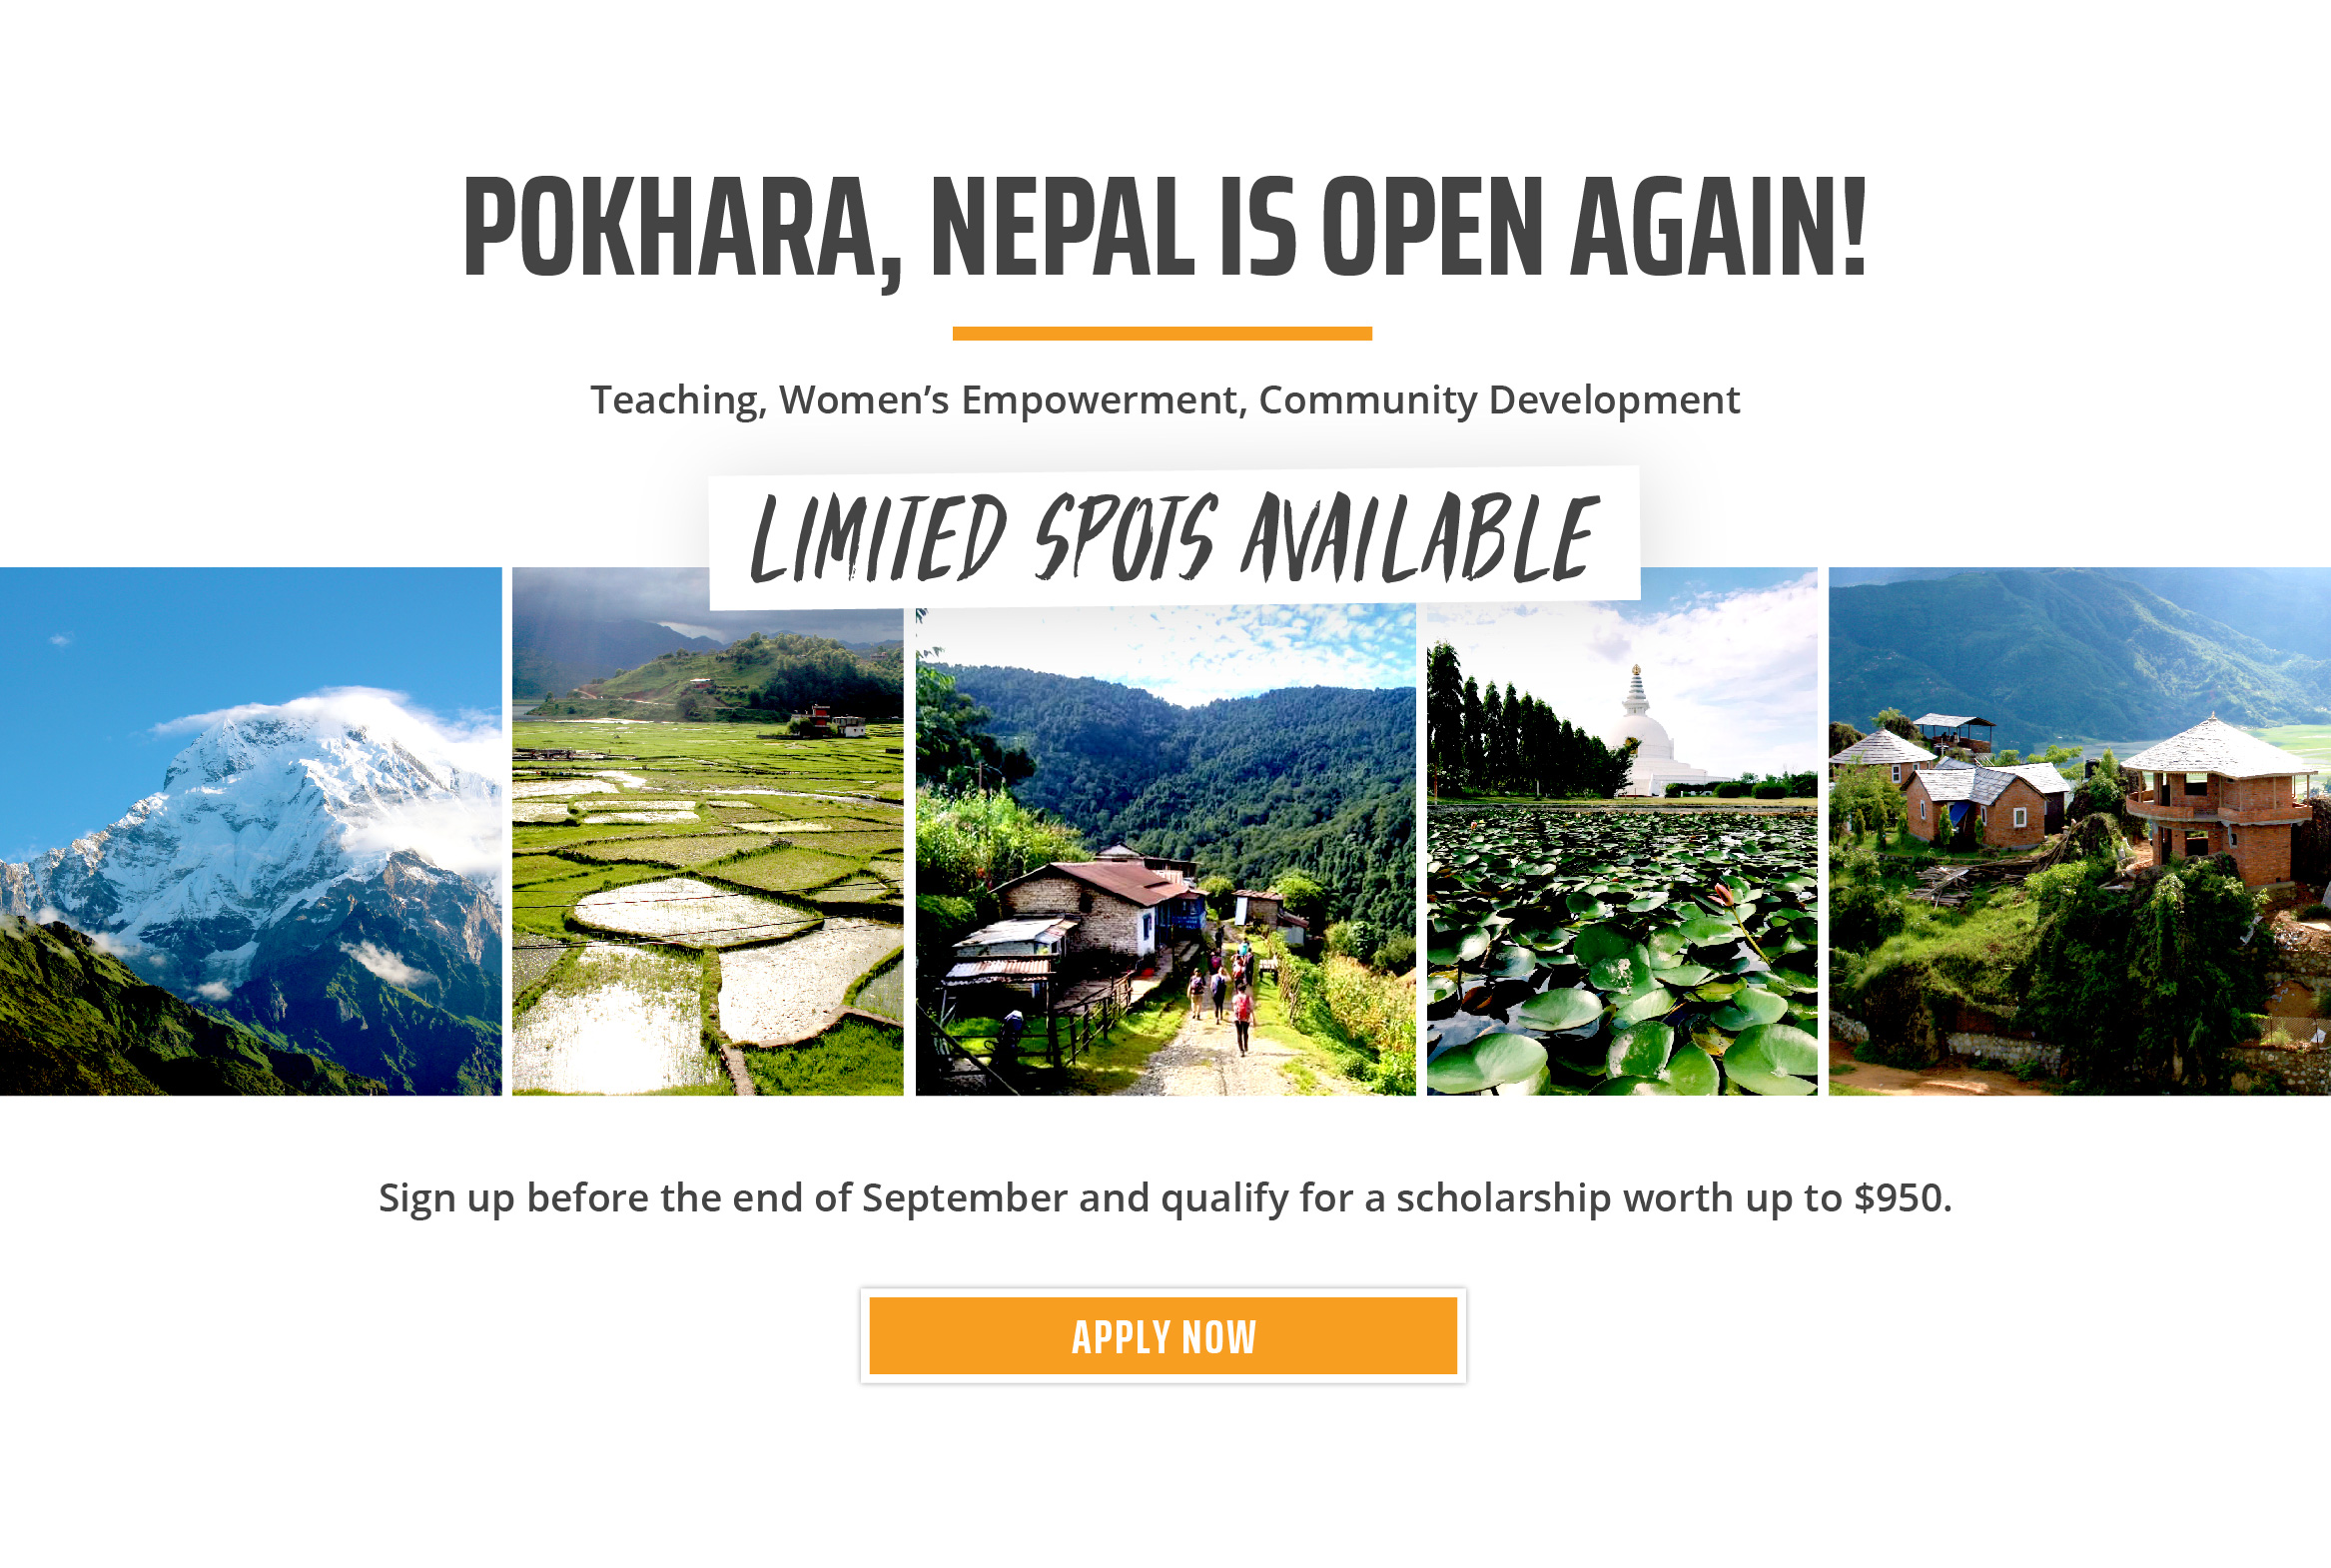 AUS/CAN Nepal Reopening